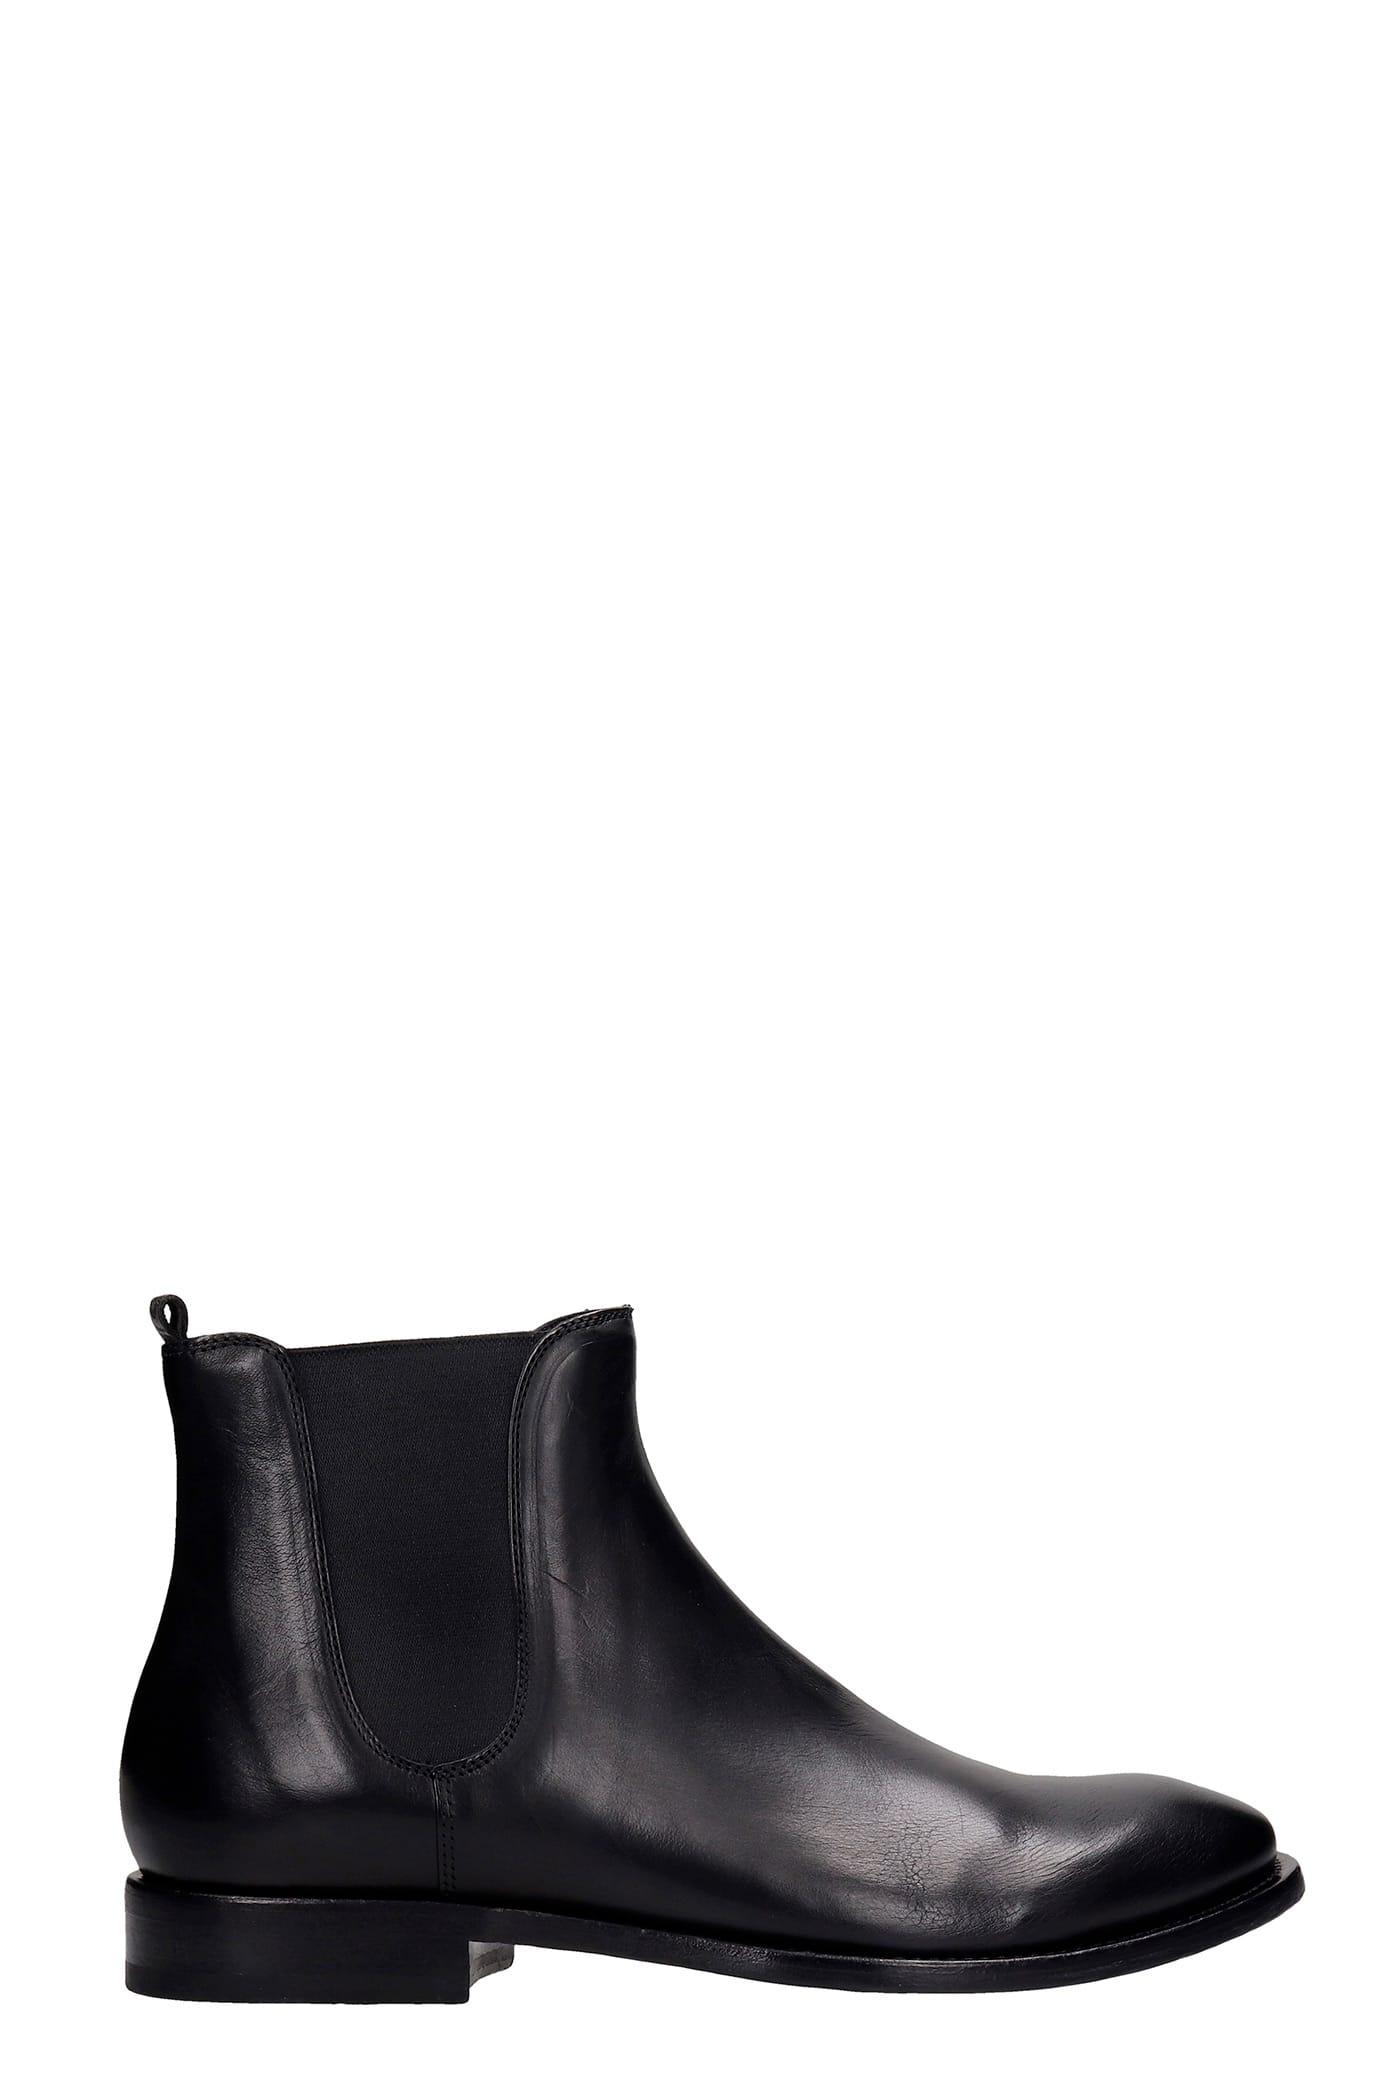 Buttero Low Heels Ankle Boots In Black Leather